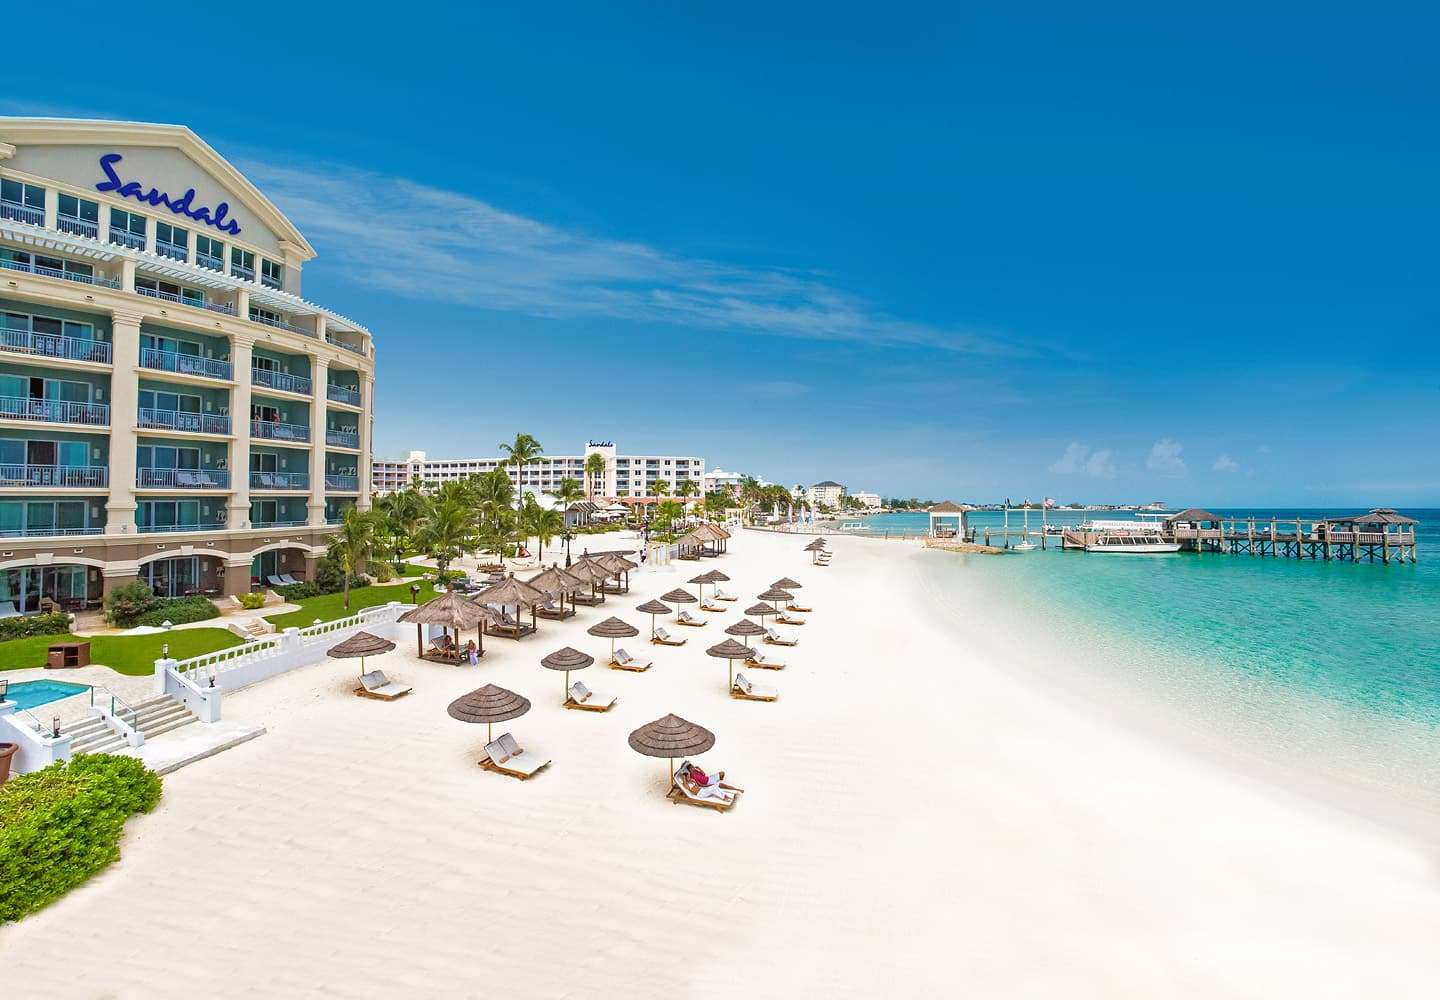 Image of Sandals Royal Bahamian Spa Resort & Offshore Island, Nassau, Bahamas